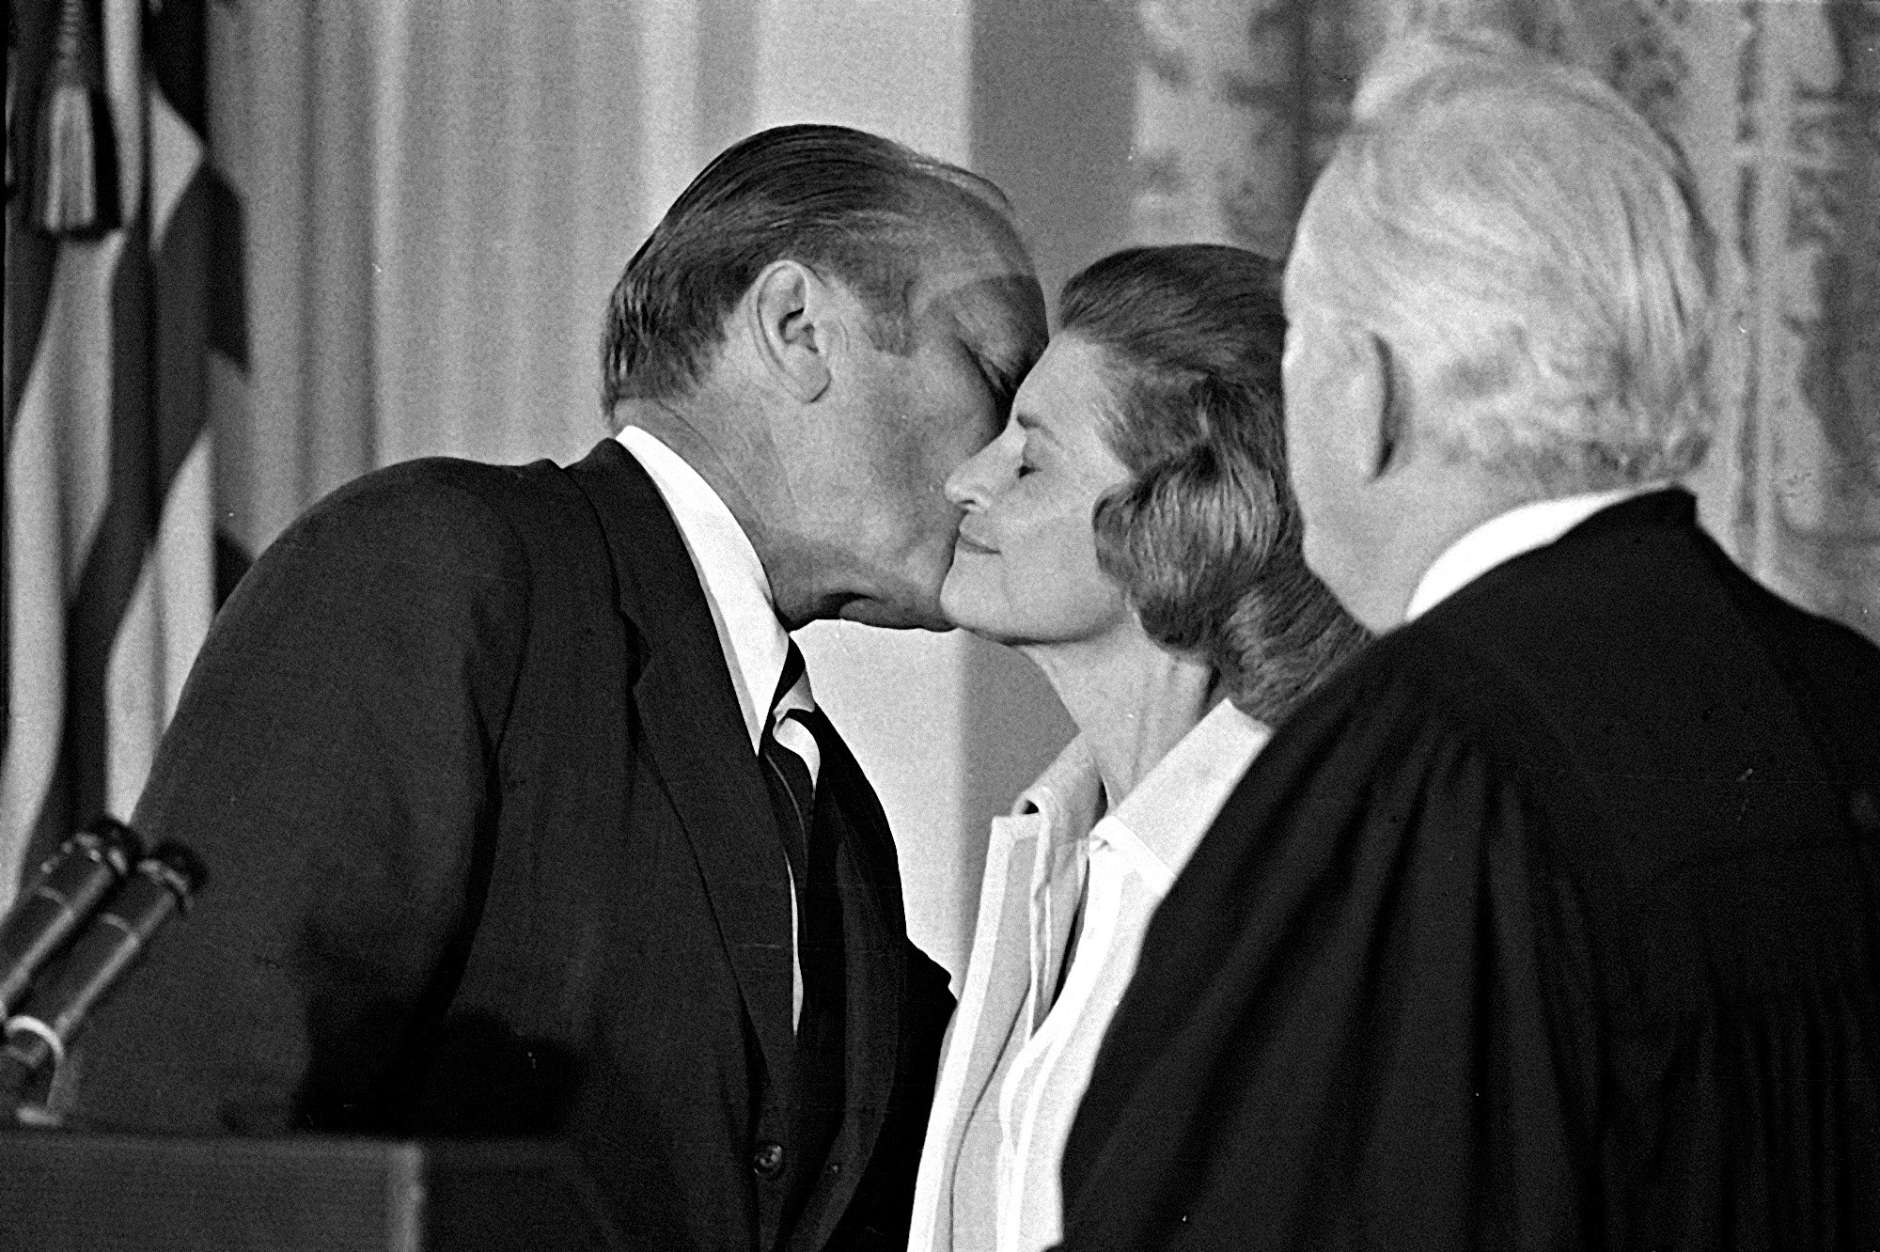 President Gerald R. Ford kisses his wife Betty, Aug. 9, 1974, after he was sworn in as 38th President of the United States by Chief Justice Warren Burger, right, in the East Room of the White House.  (AP Photo)